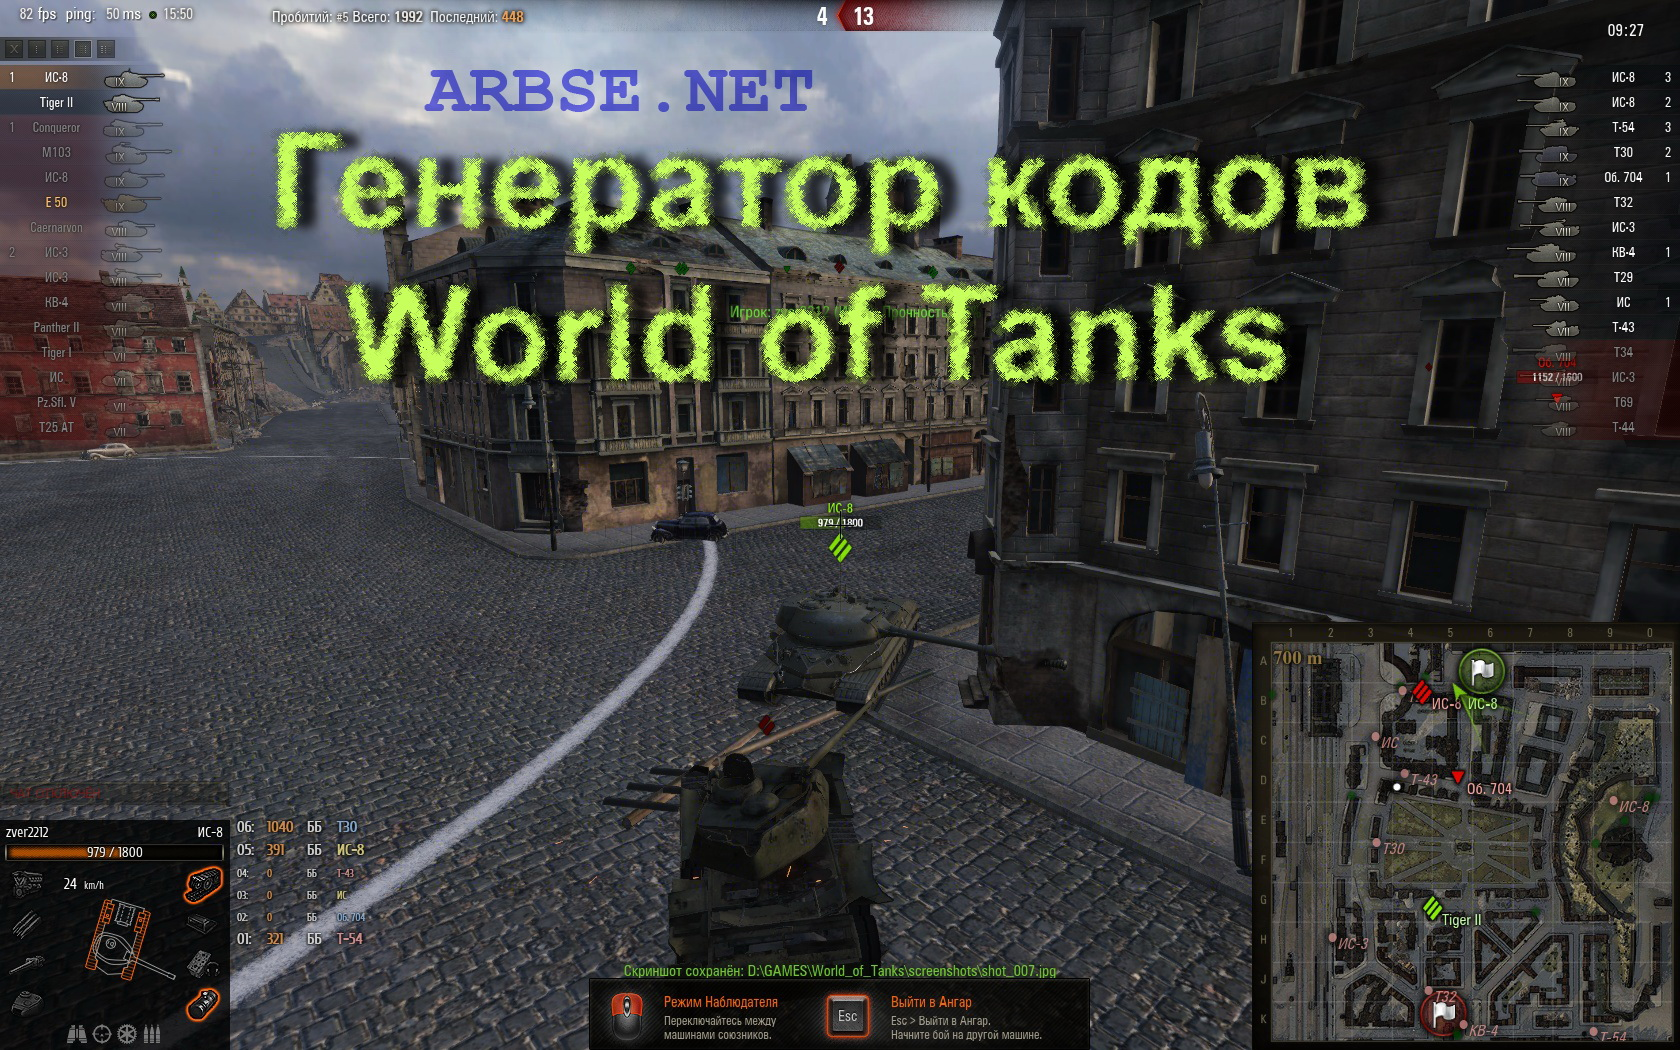 генератор бонус кодов для world of tanks бесплатно скачать